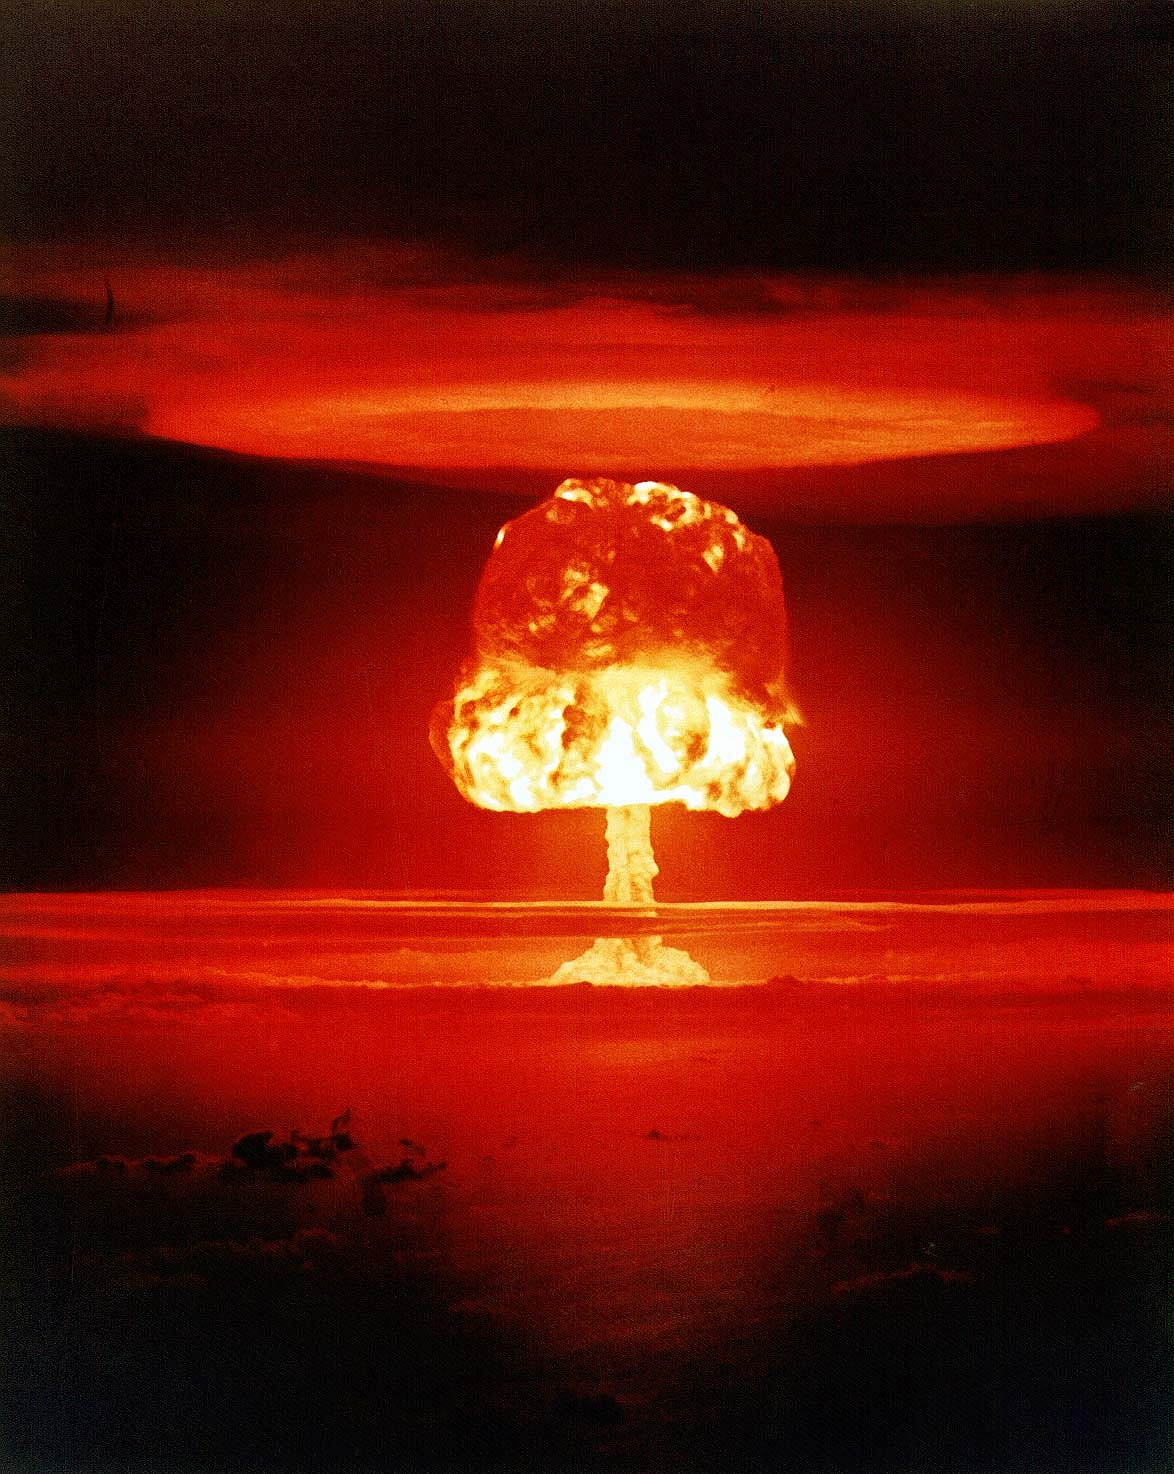 http://chamorrobible.org/images/photos/gpw-20050304-UnitedStatesDepartmentOfEnergy-XX-33-thermonuclear-hydrogen-bomb-Operation-Castle-ROMEO-Event-Bikini-Atoll-Marshall-Islands-19540327-large.jpg